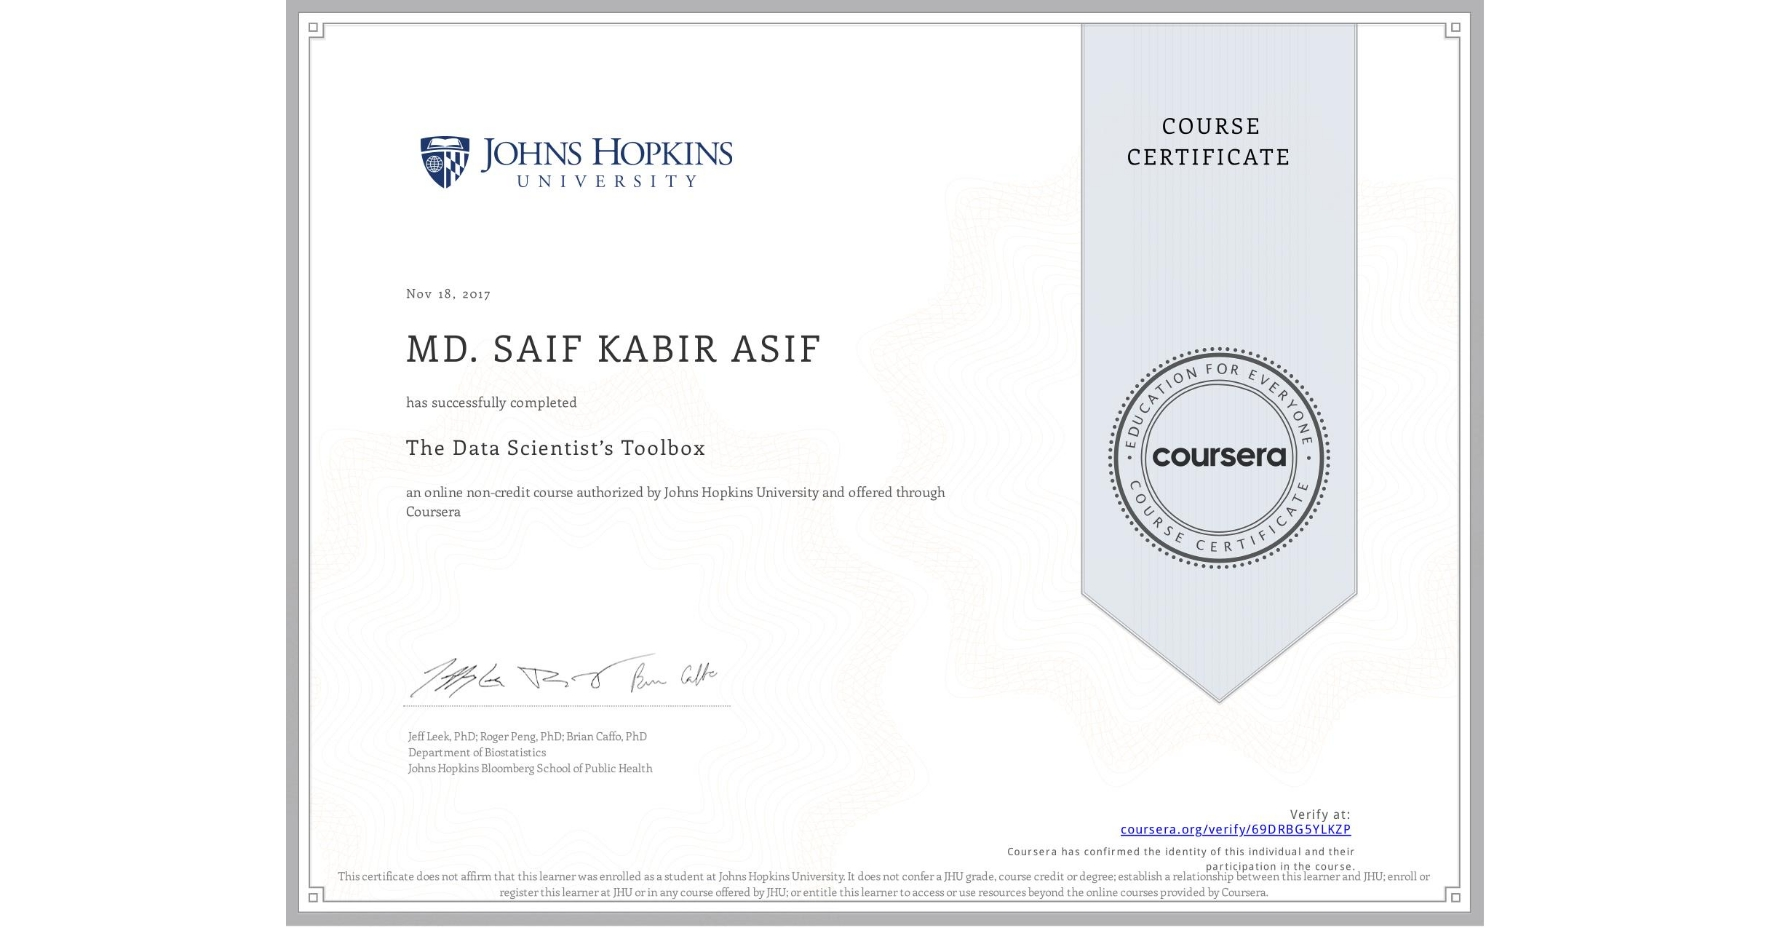 View certificate for Md. Saif Kabir  Asif, The Data Scientist's Toolbox, an online non-credit course authorized by Johns Hopkins University and offered through Coursera